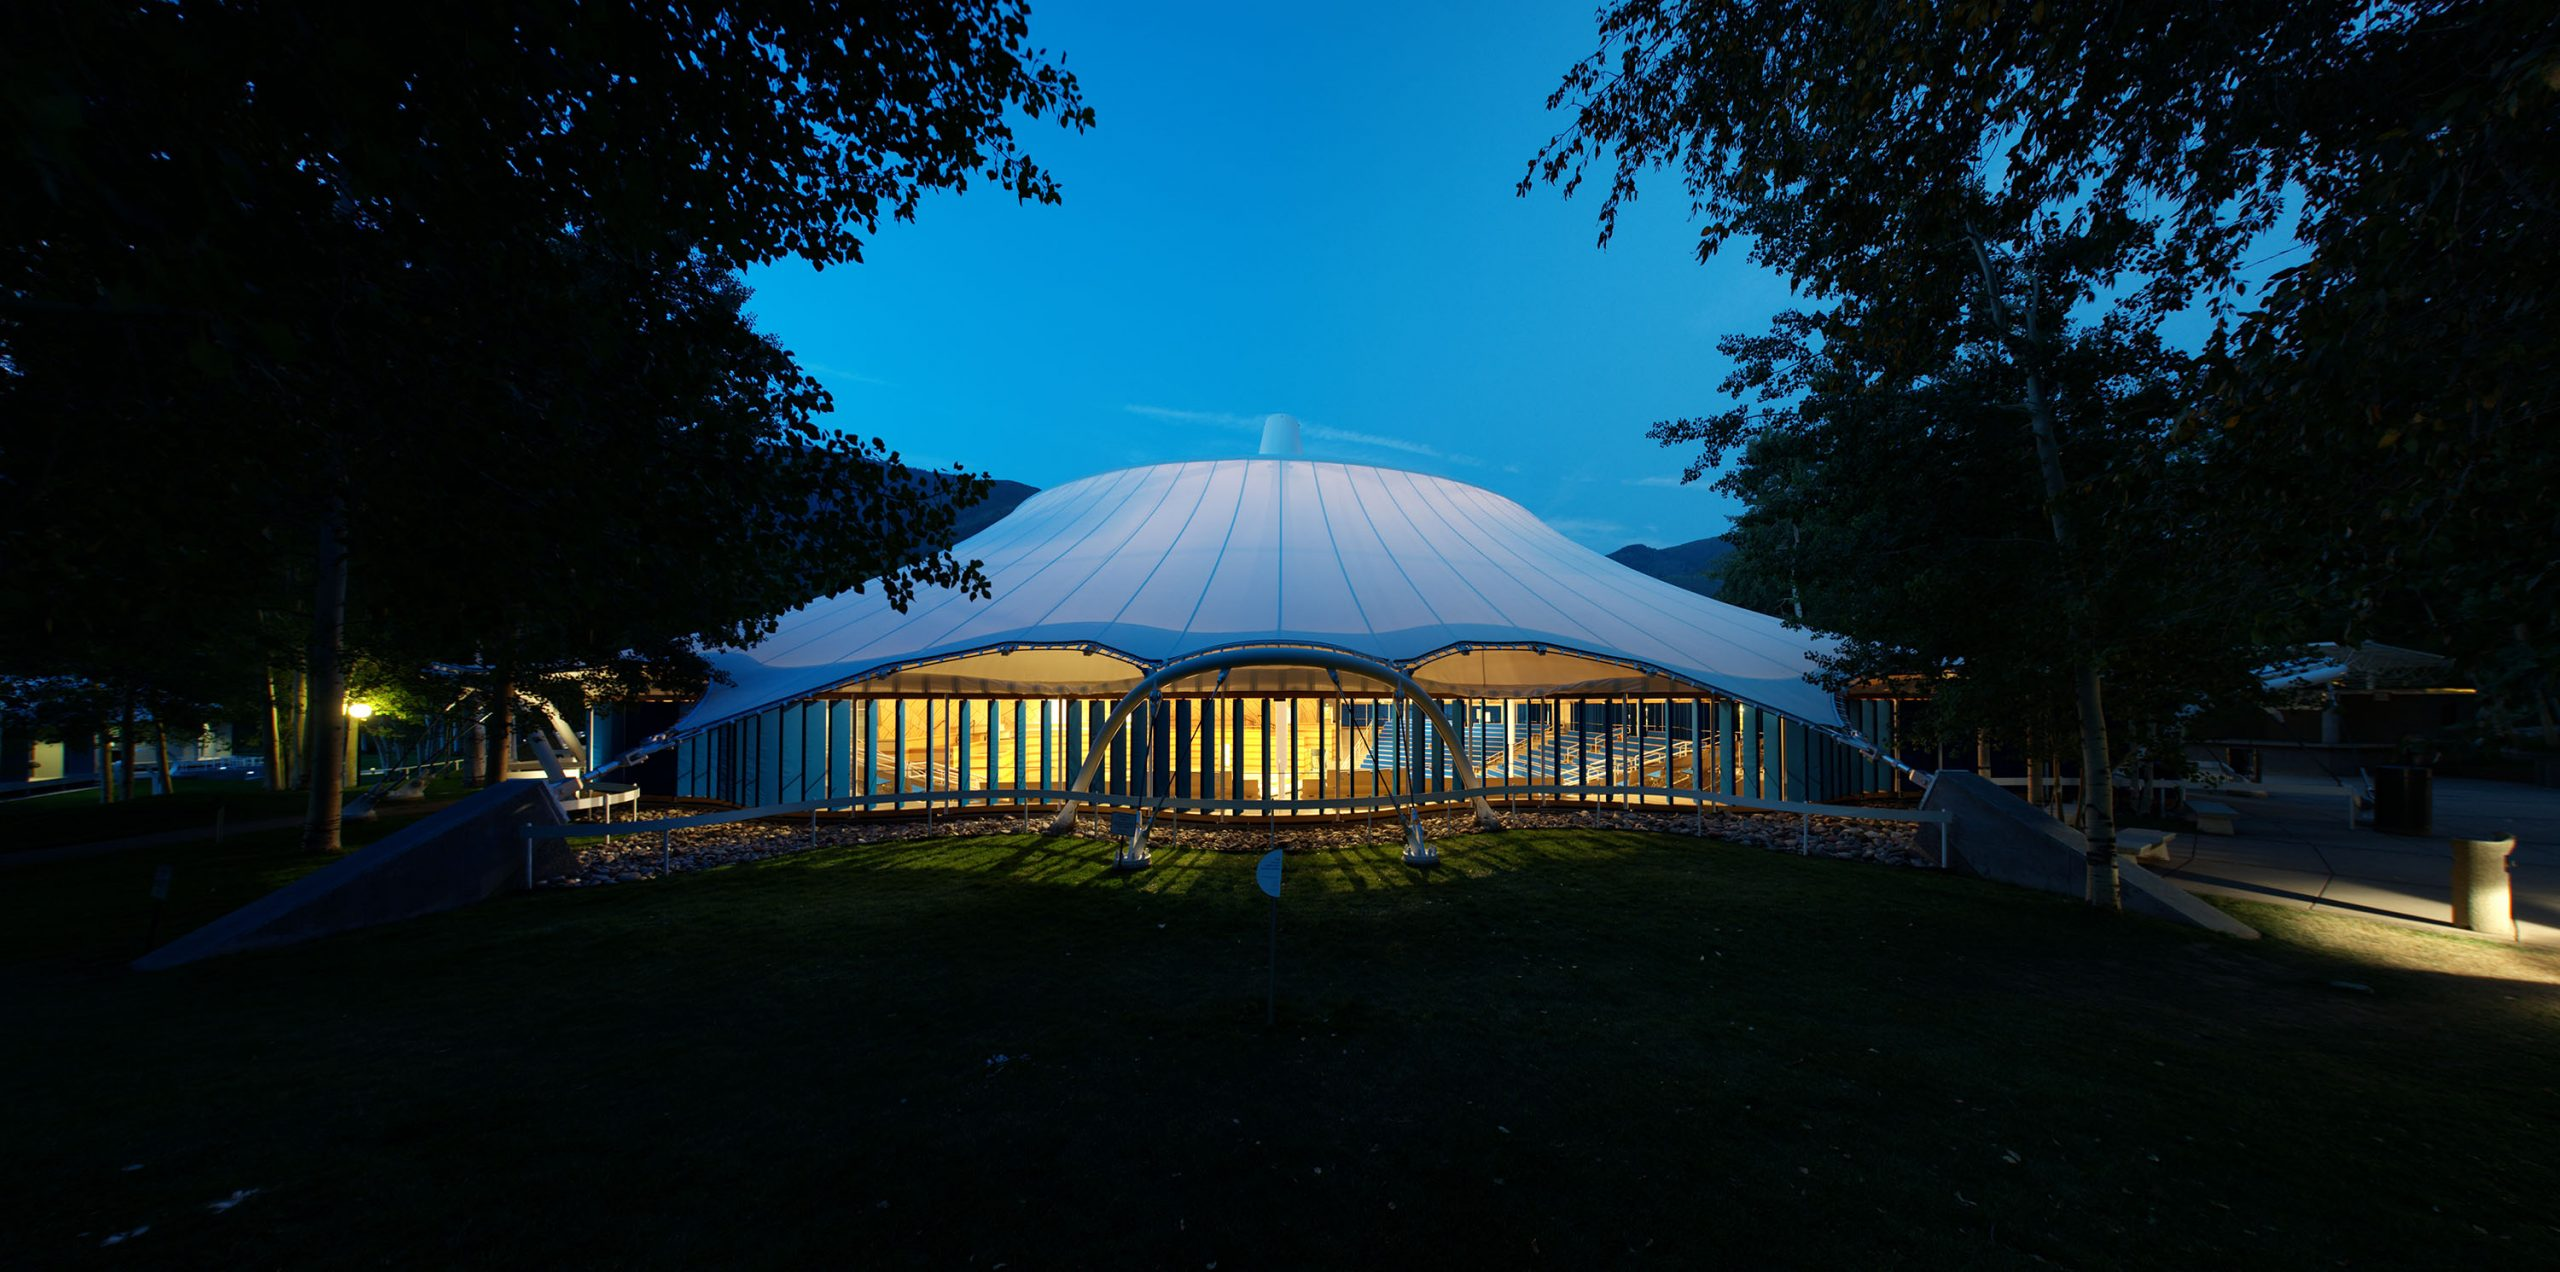 The Benedict Music Tent at the Aspen Music Festival and School will once again hold musicians and audiences with new safety measures.